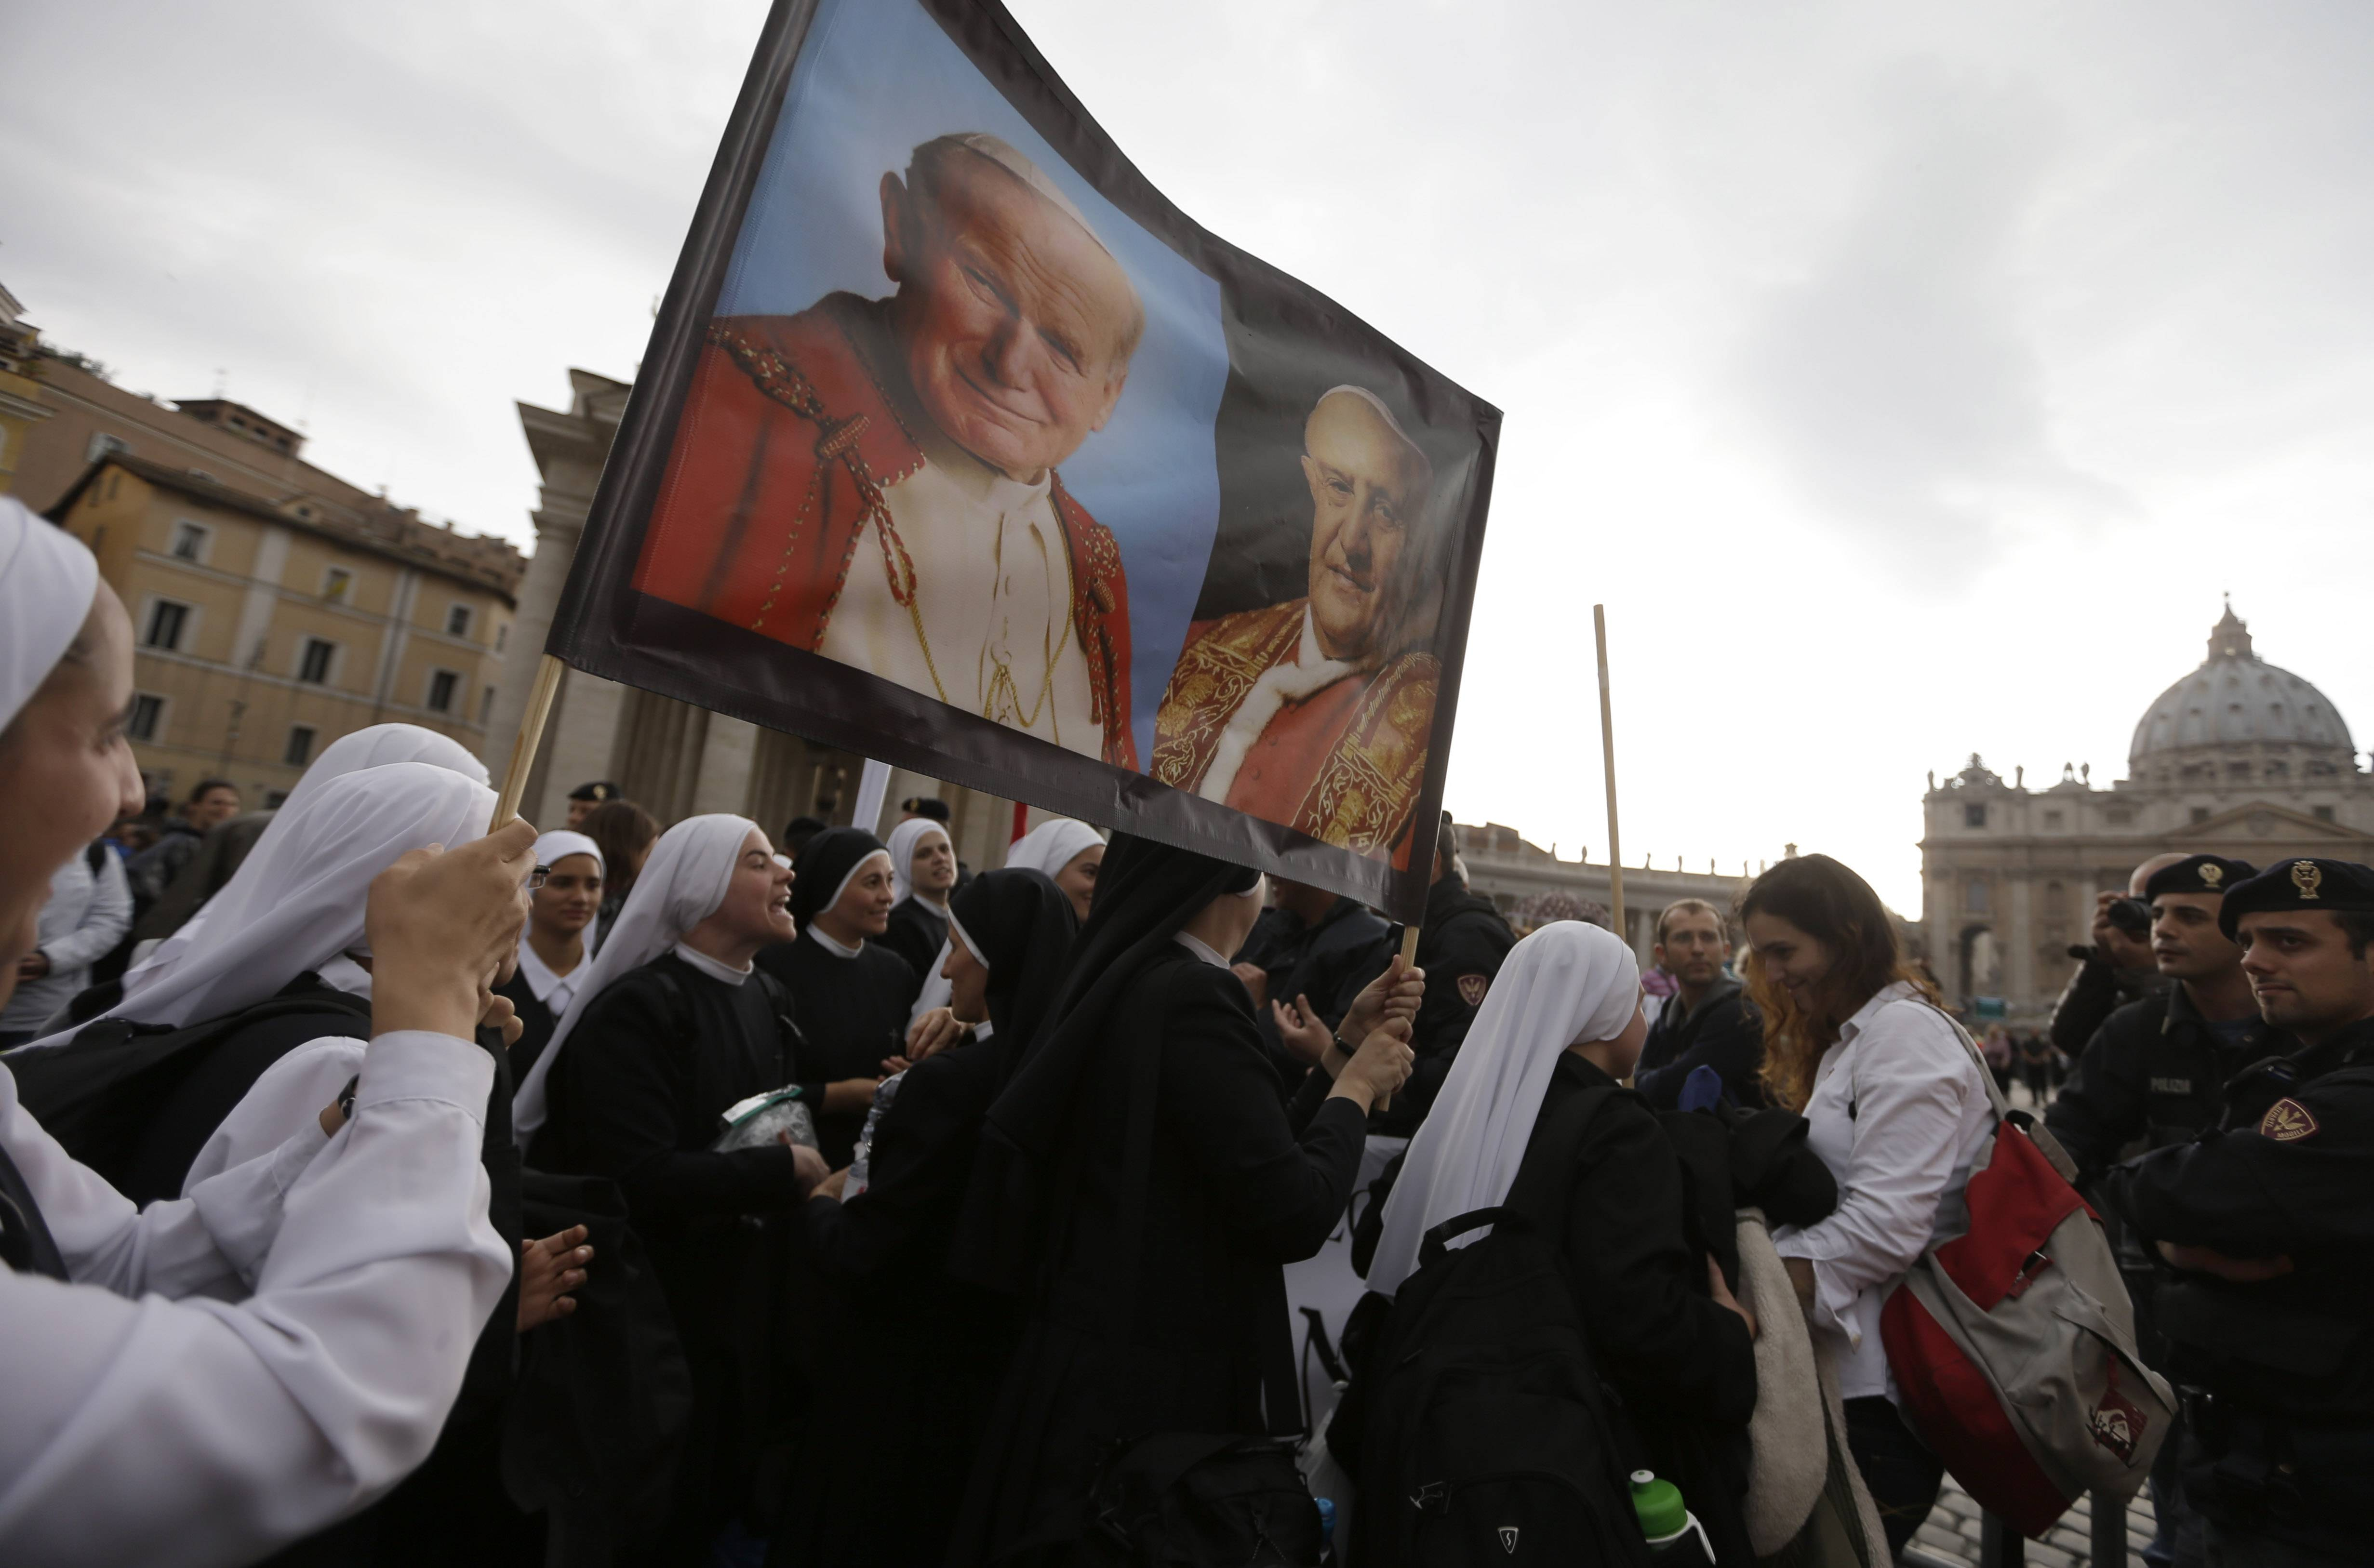 Nuns hold up pictures of late Pope John Paul II, top left, and Pope John XXIII, in St. Peter's Square at the Vatican, Saturday, April 26, 2014. Pilgrims and faithful are gathering in Rome to attend Sunday's ceremony at the Vatican where Pope Francis will elevate in a solemn ceremony John XXIII and John Paul II to sainthood.